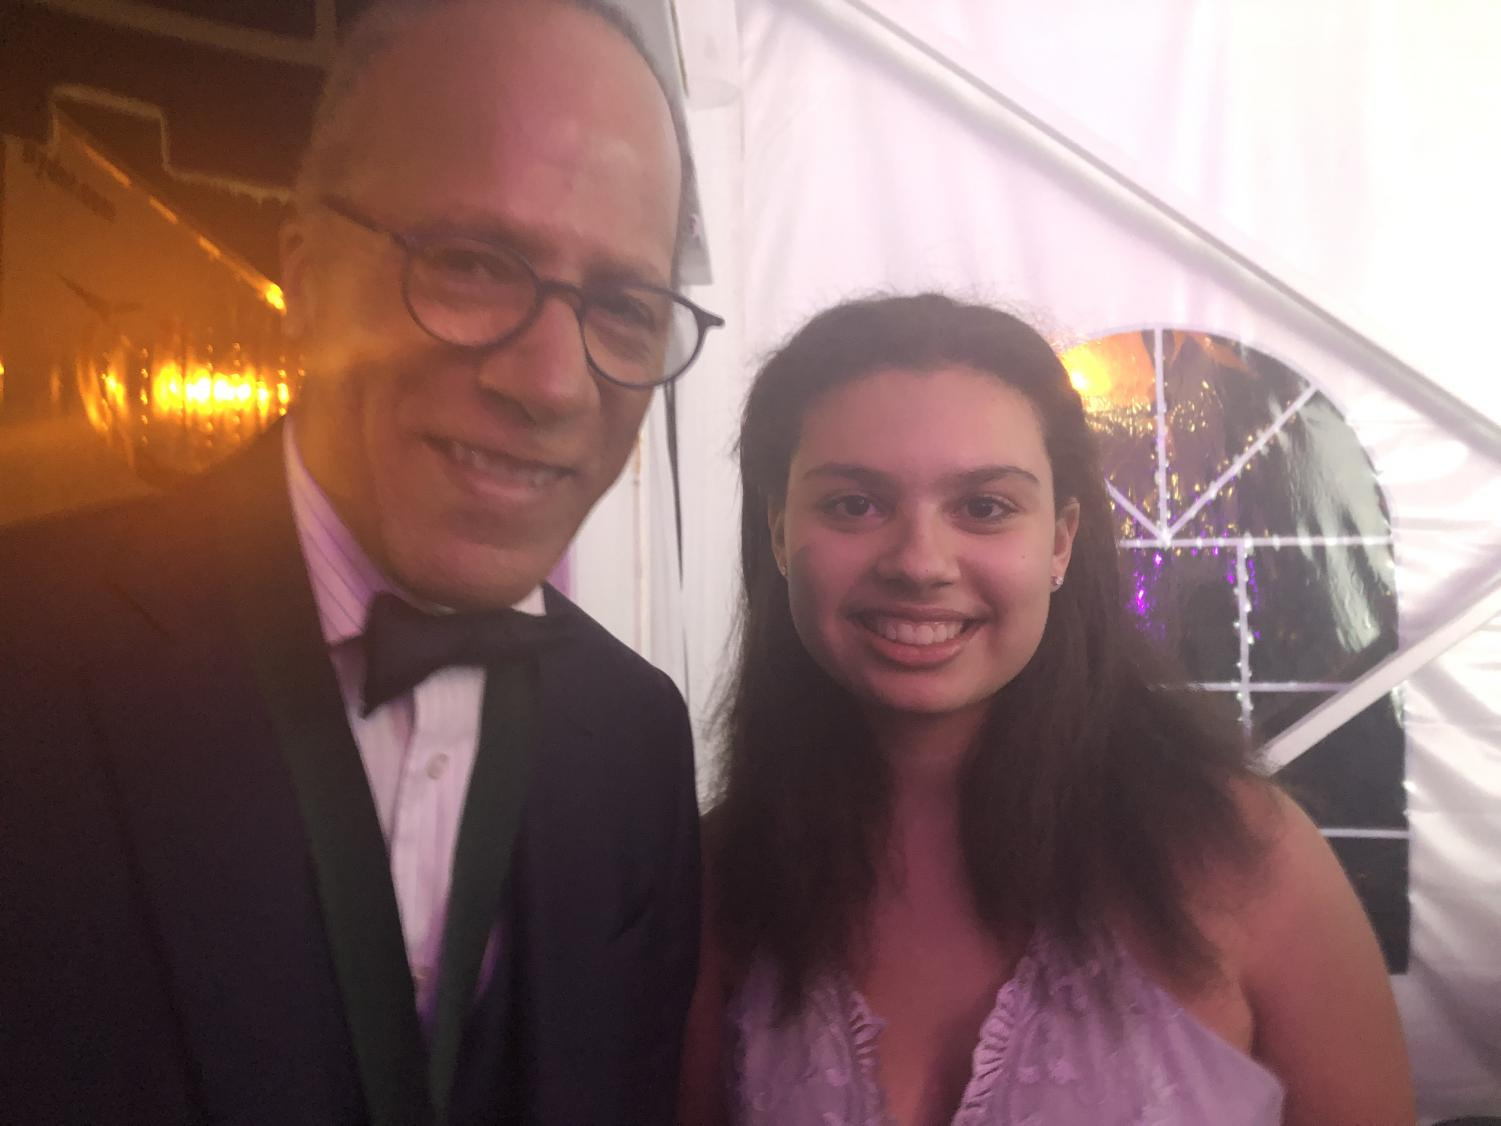 Lester Holt and I at Poynter's annual Ball.